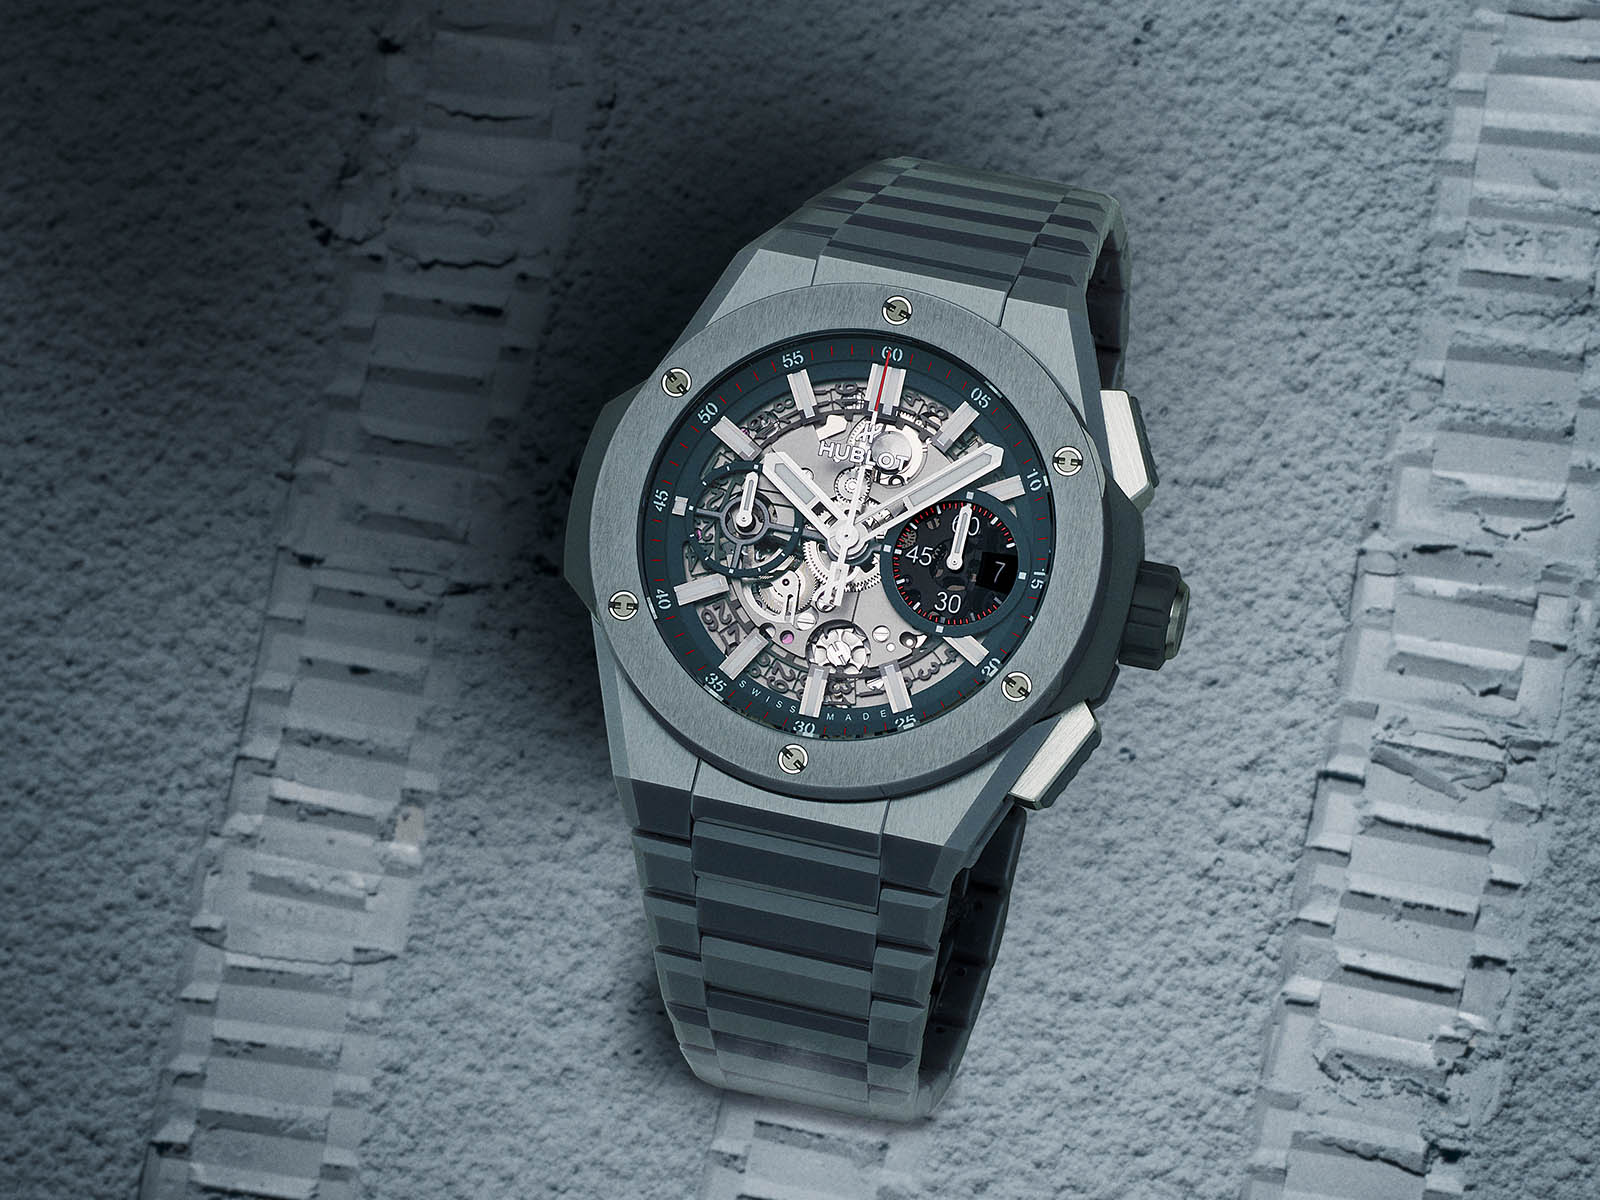 hublot-big-bang-integral-ceramic-lvmh-2021-novelties-3.jpg